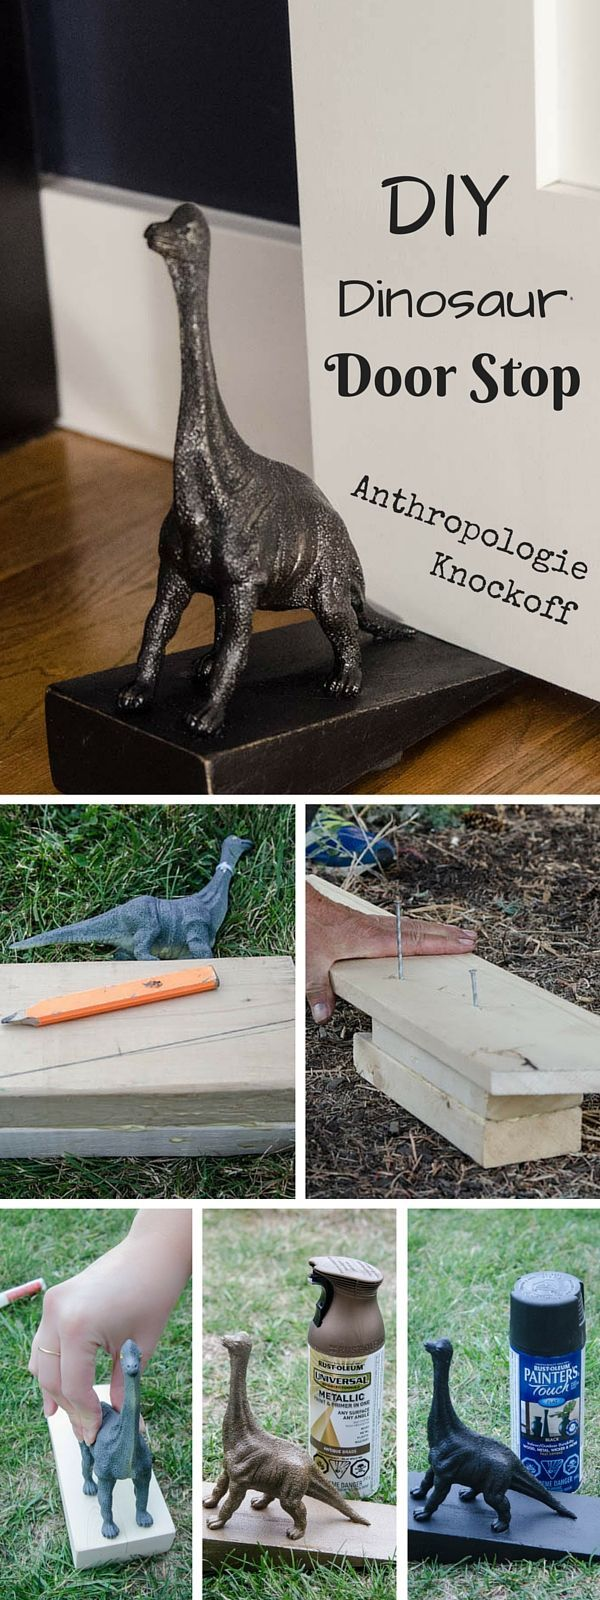 Check out the tutorial: #DIY Anthropologie Dinosaur Door Stop Knockoff #crafts #homedecor